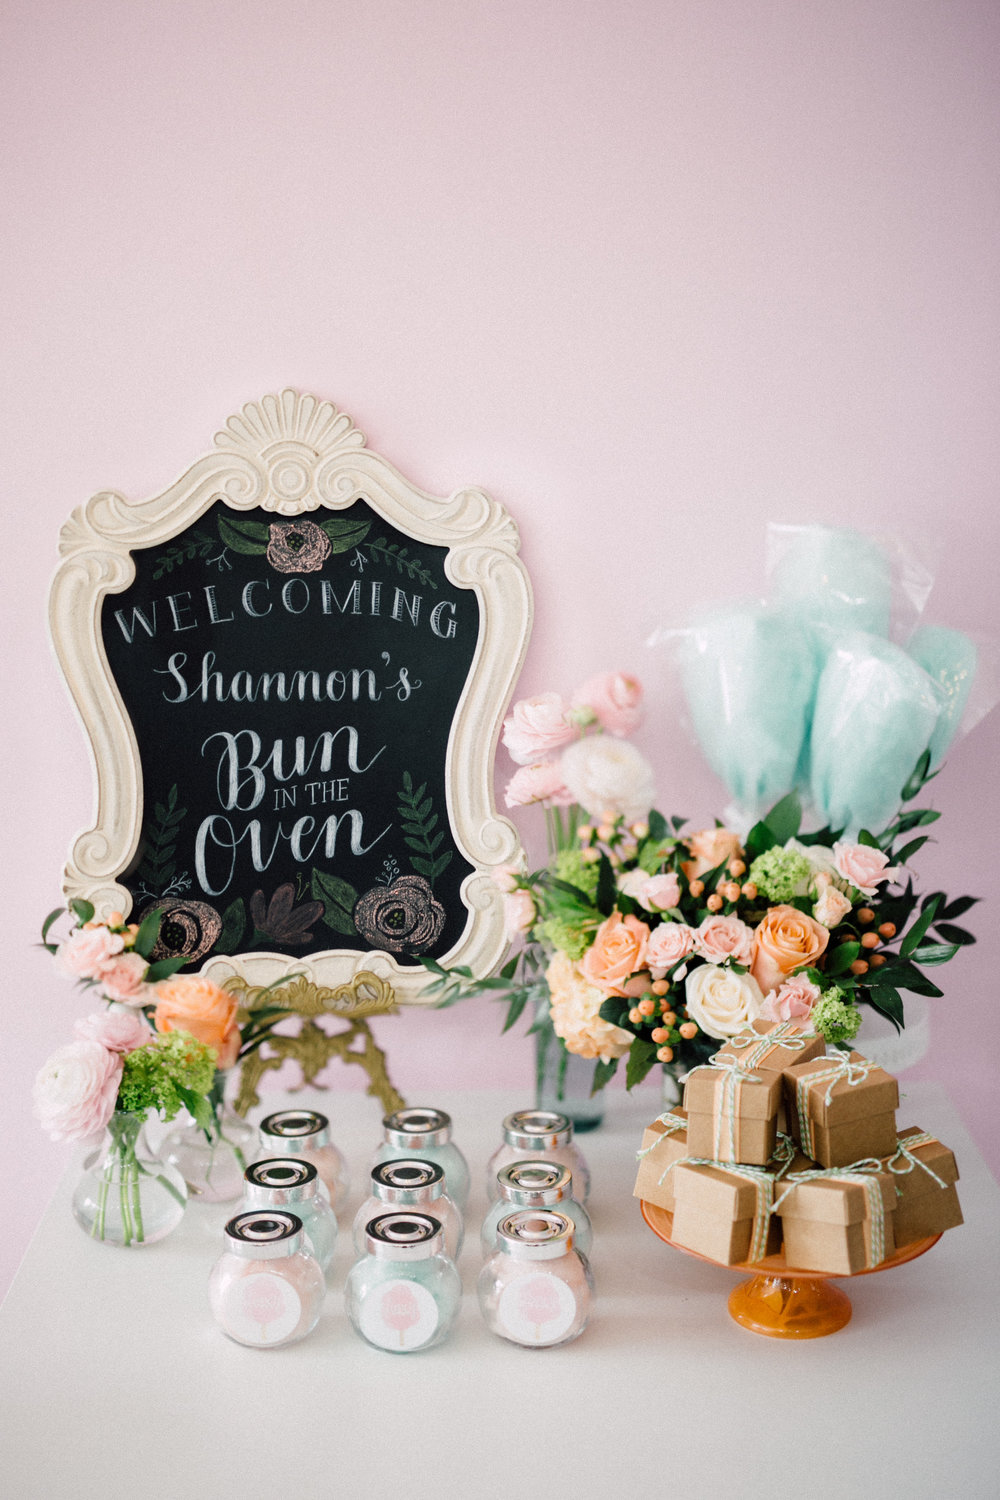 Welcome table - Bun In The Oven Baby Shower (Style Me Pretty & SMP Living)